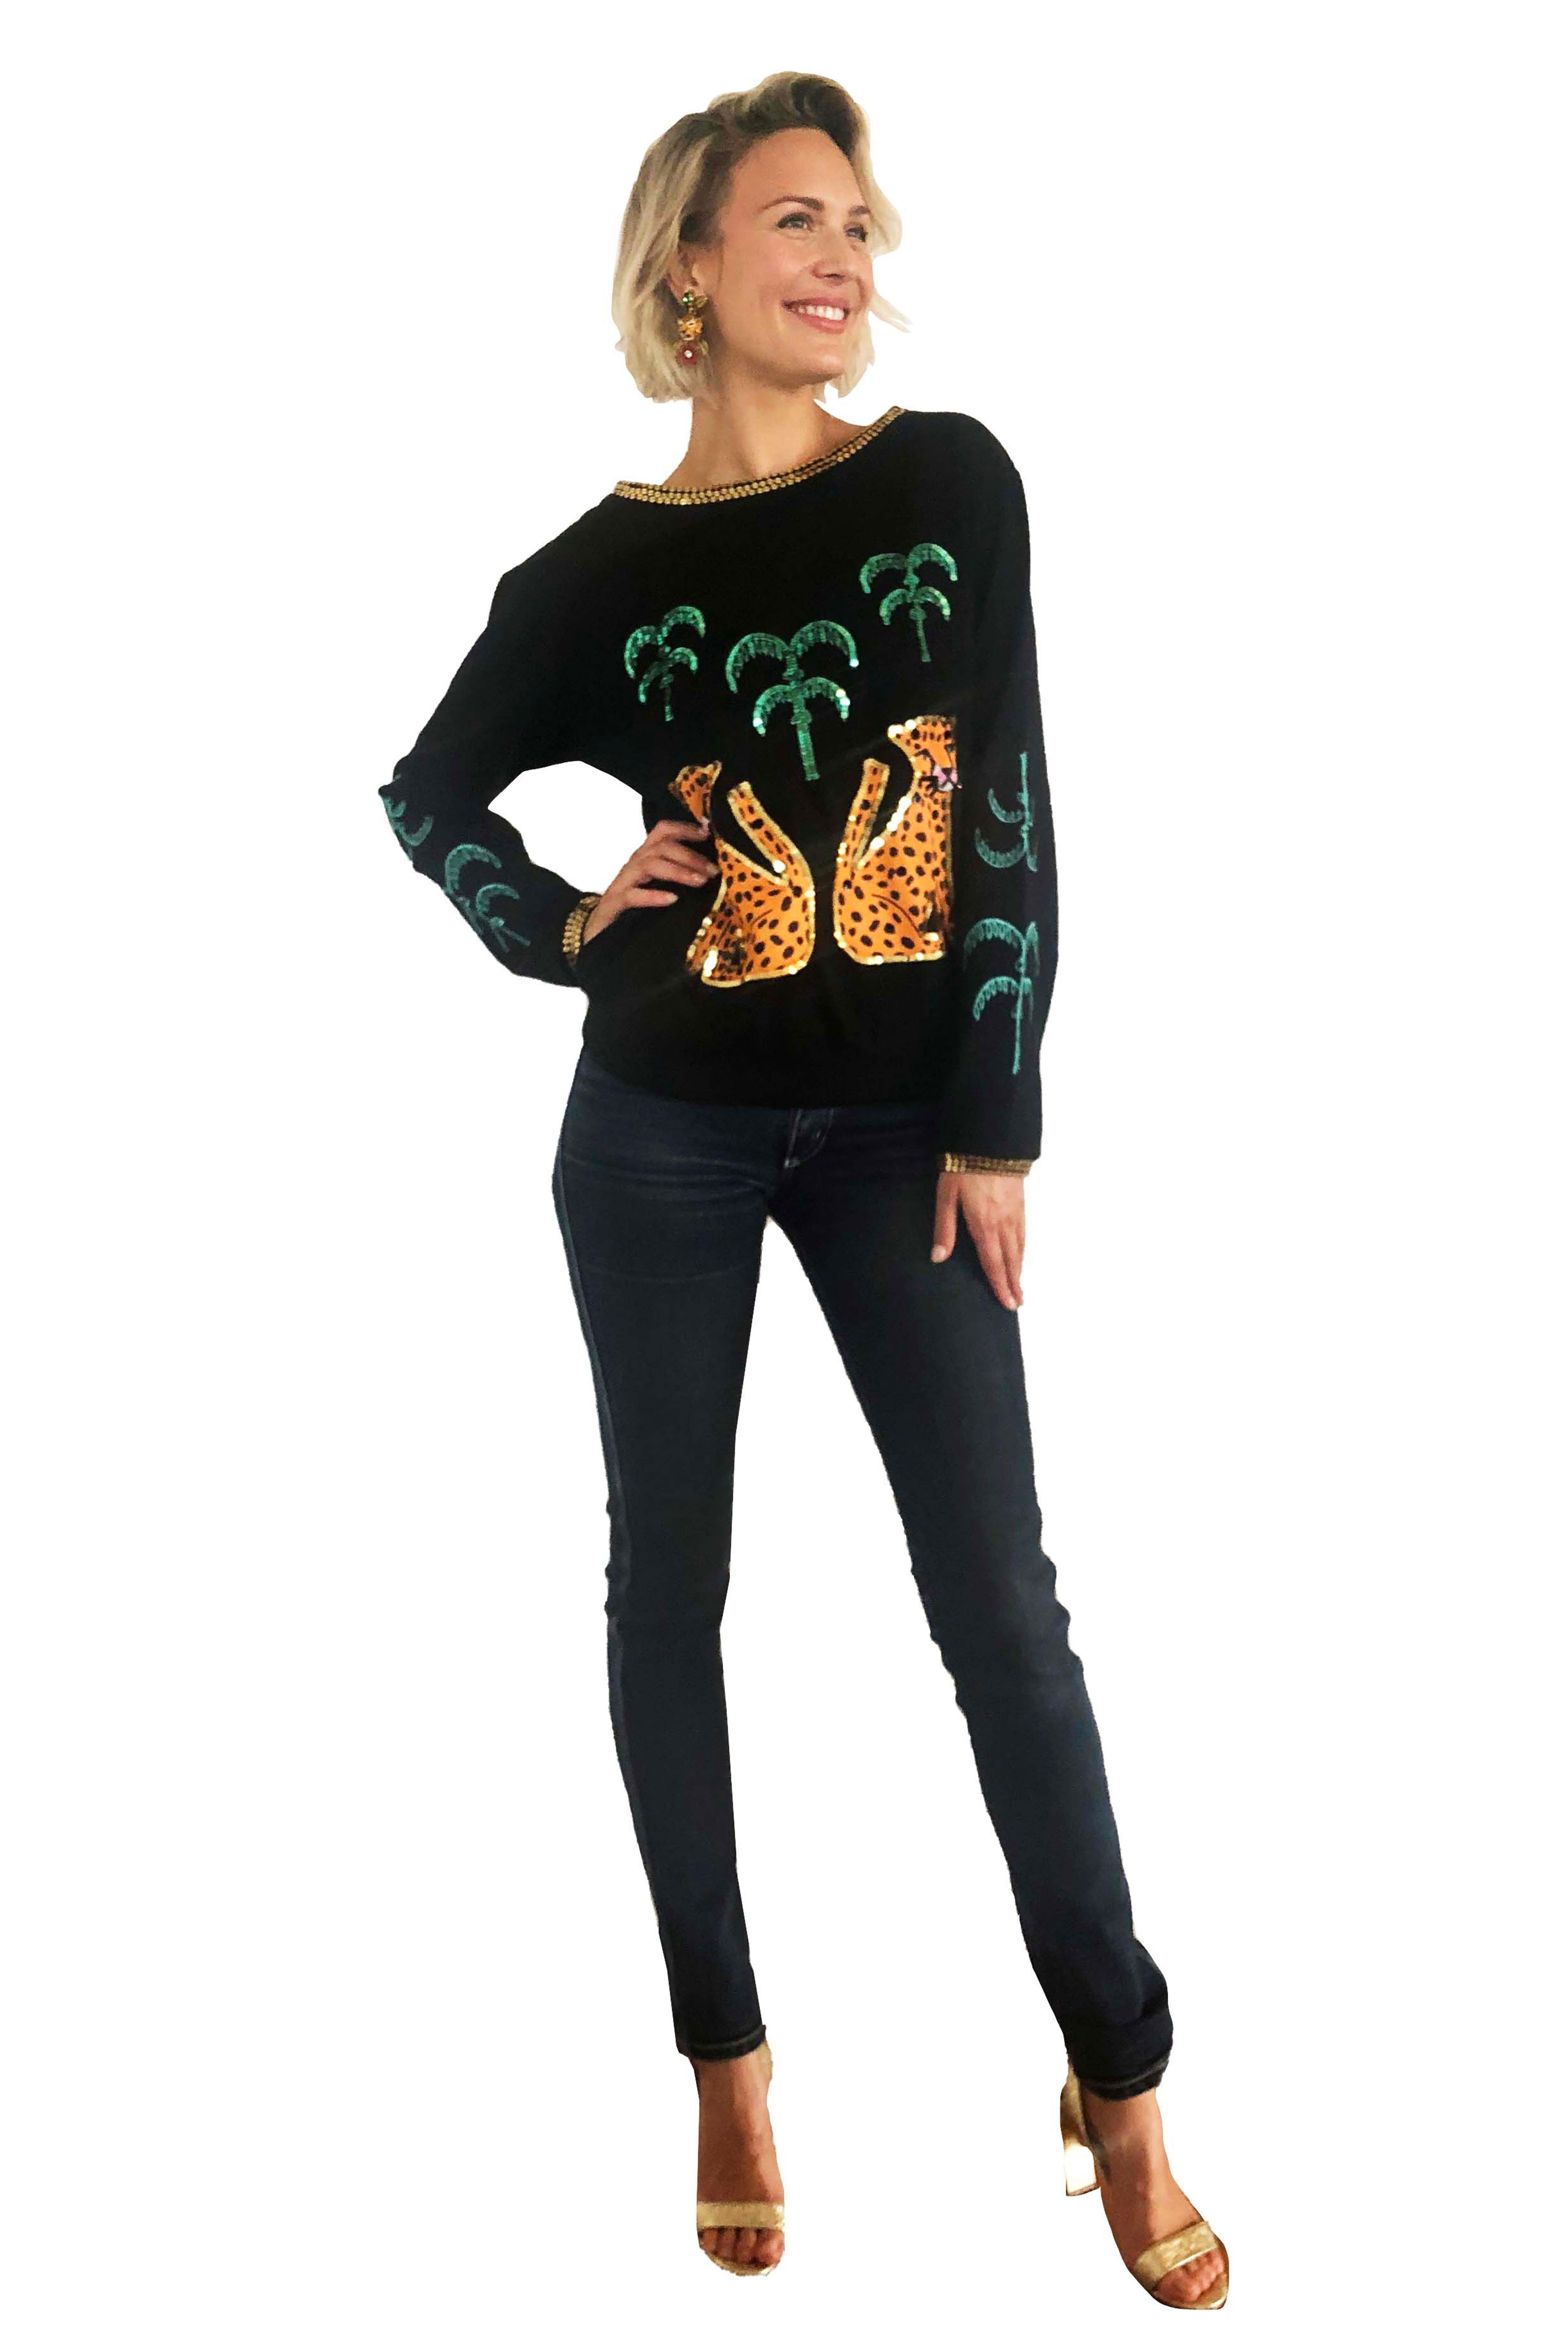 The Black Cheetah Jumper by Bonita Collective